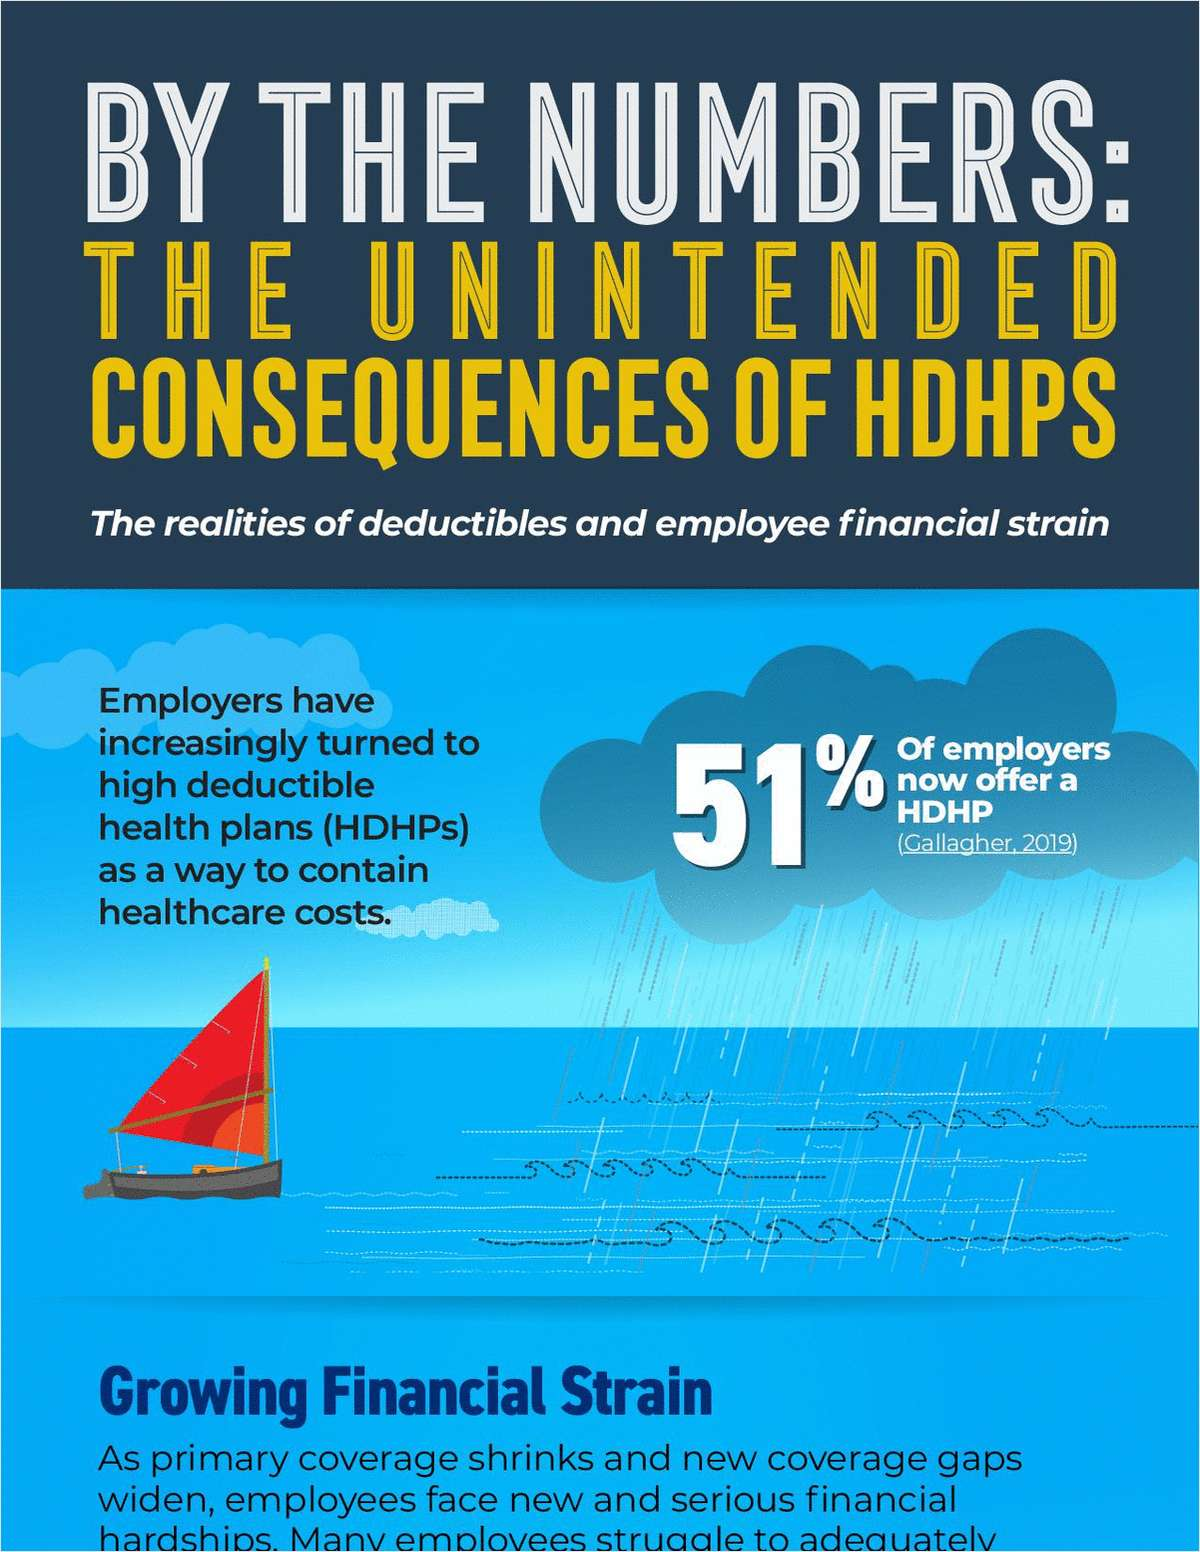 By the Numbers: The Unintended Consequences of HDHPs